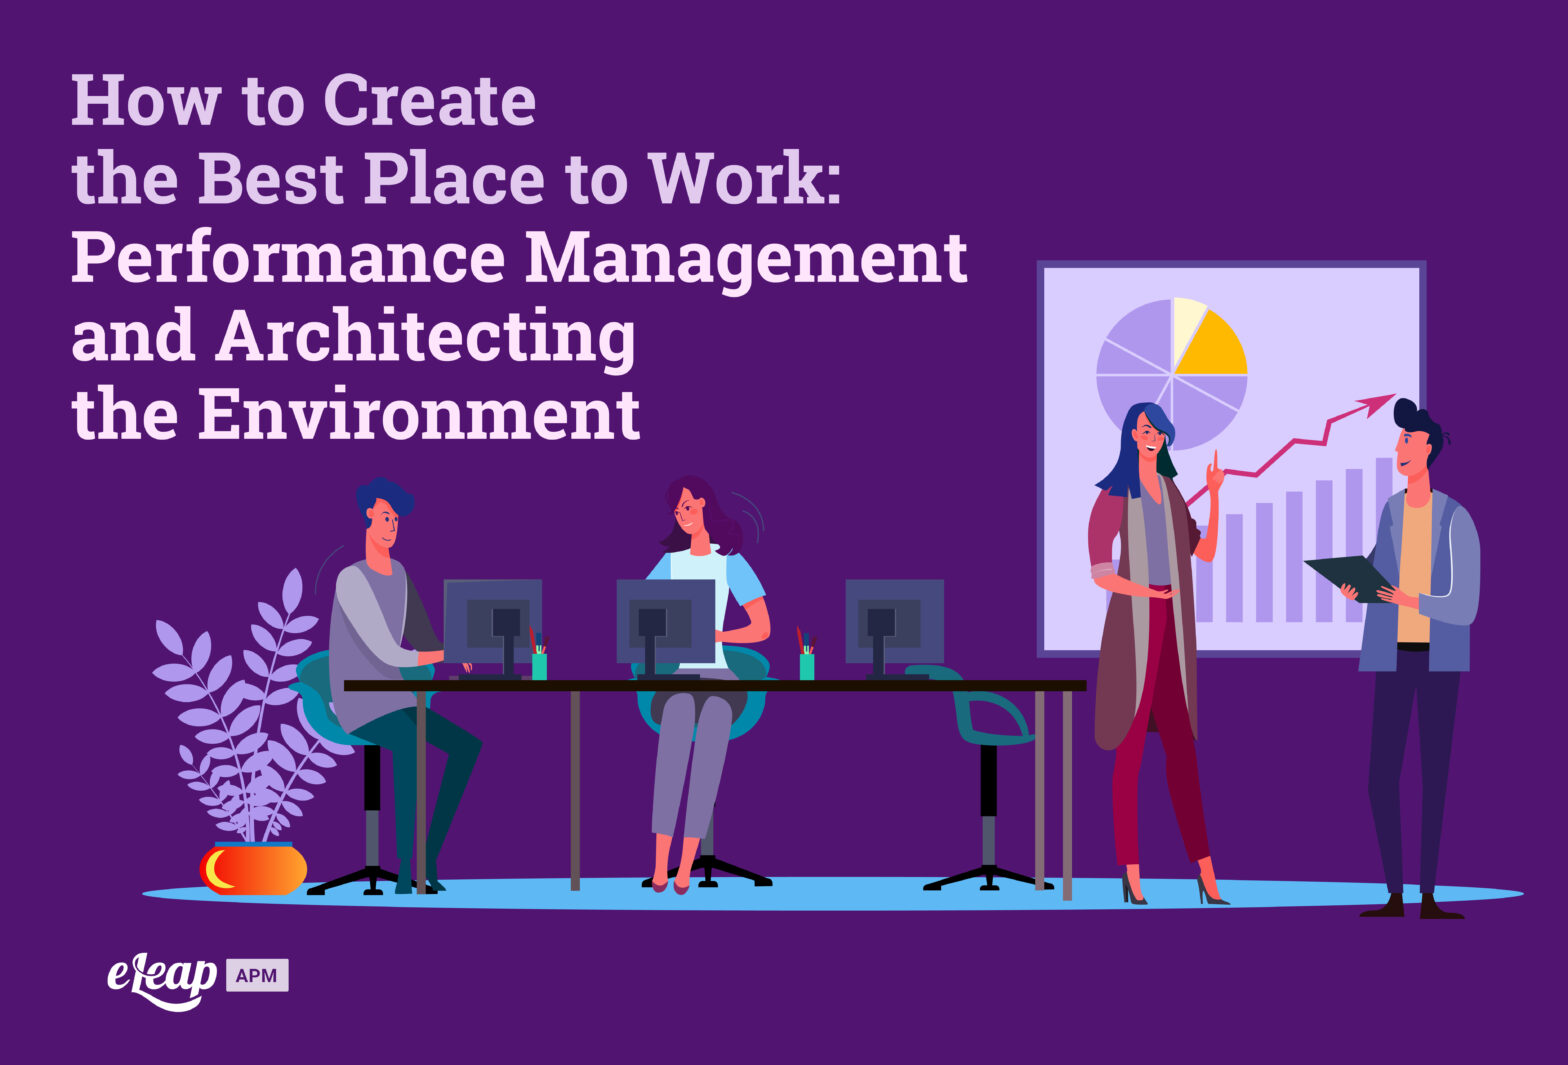 How to Create the Best Place to Work: Performance Management and Architecting the Environment